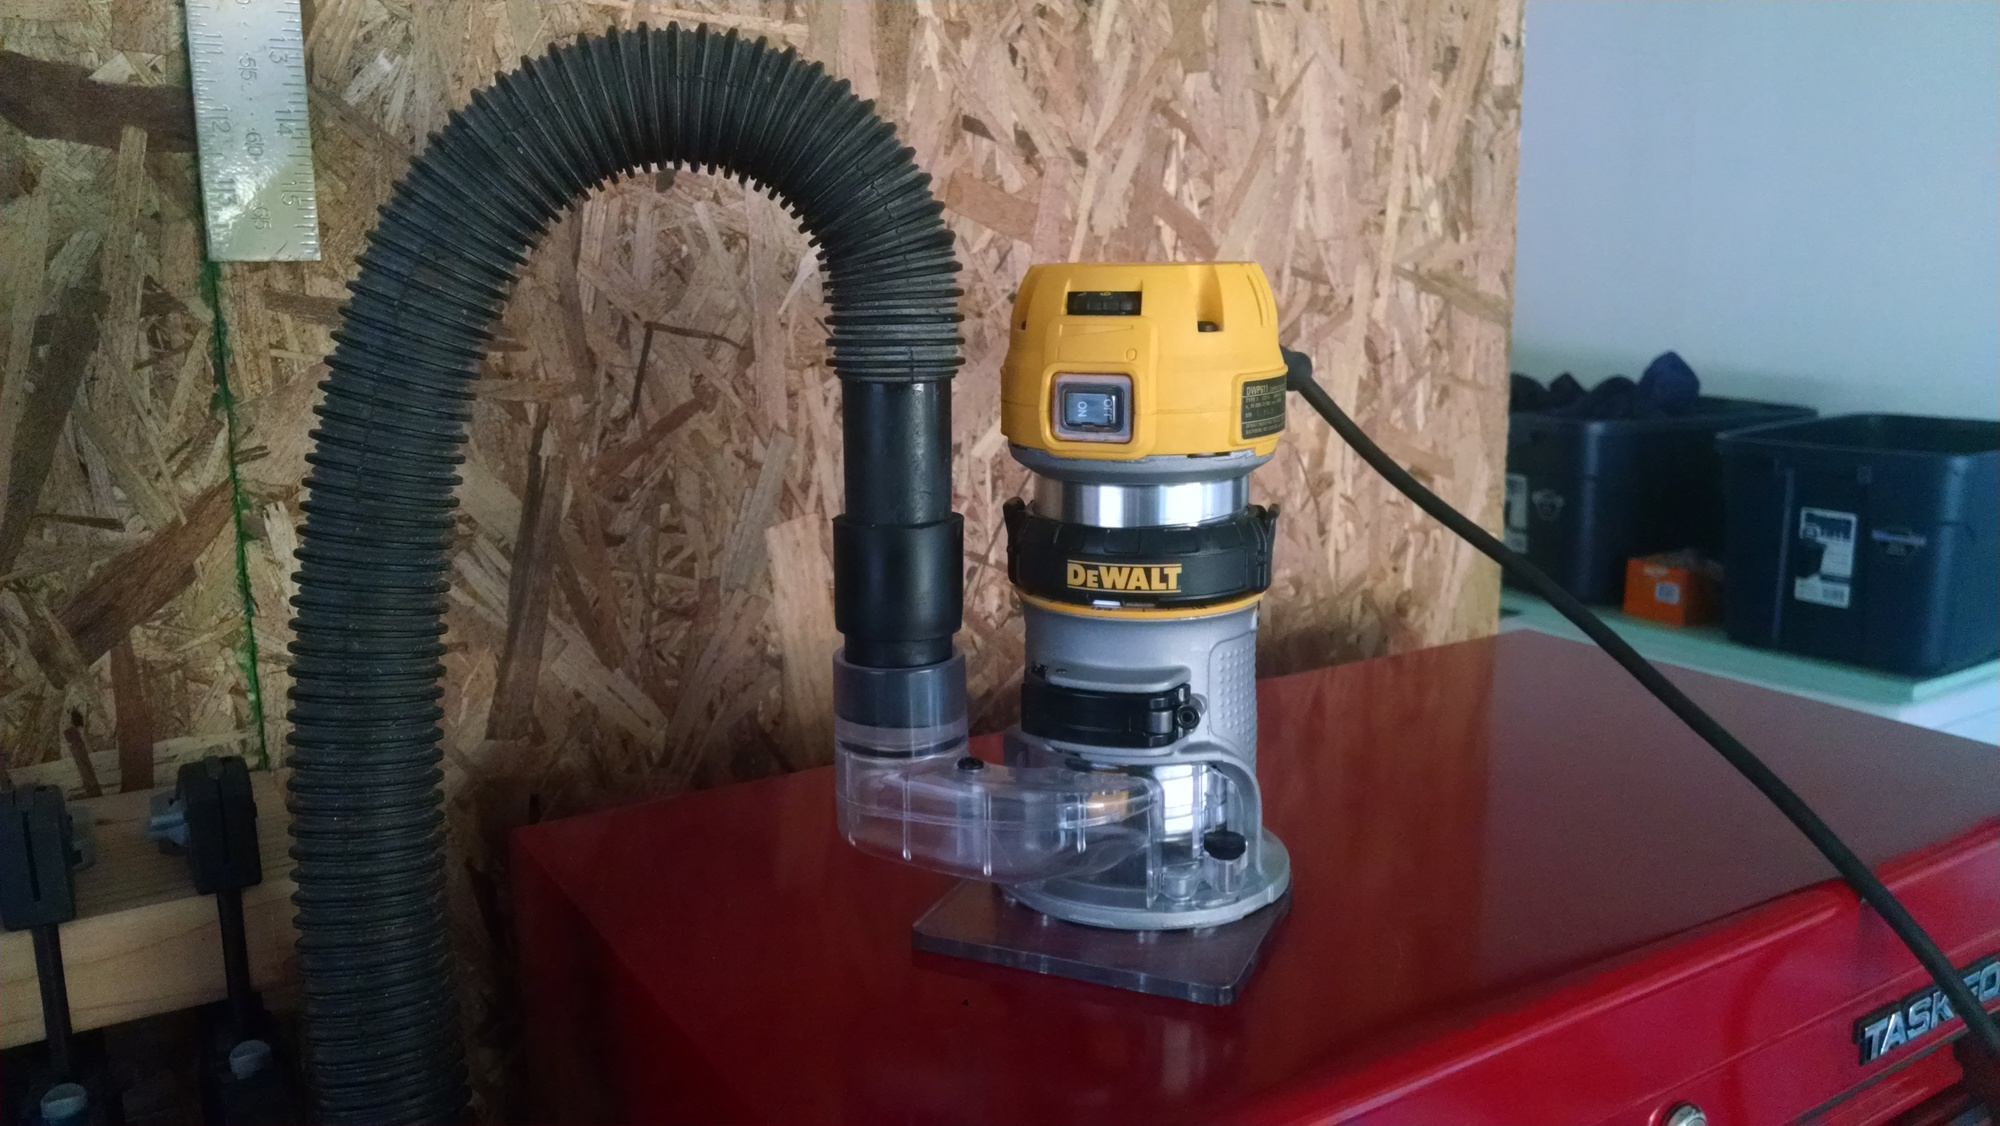 I need a shop vac hose for a dewalt dw618 router page 3 router click image for larger version name img20150613191035689g views 231 size 6192 greentooth Image collections